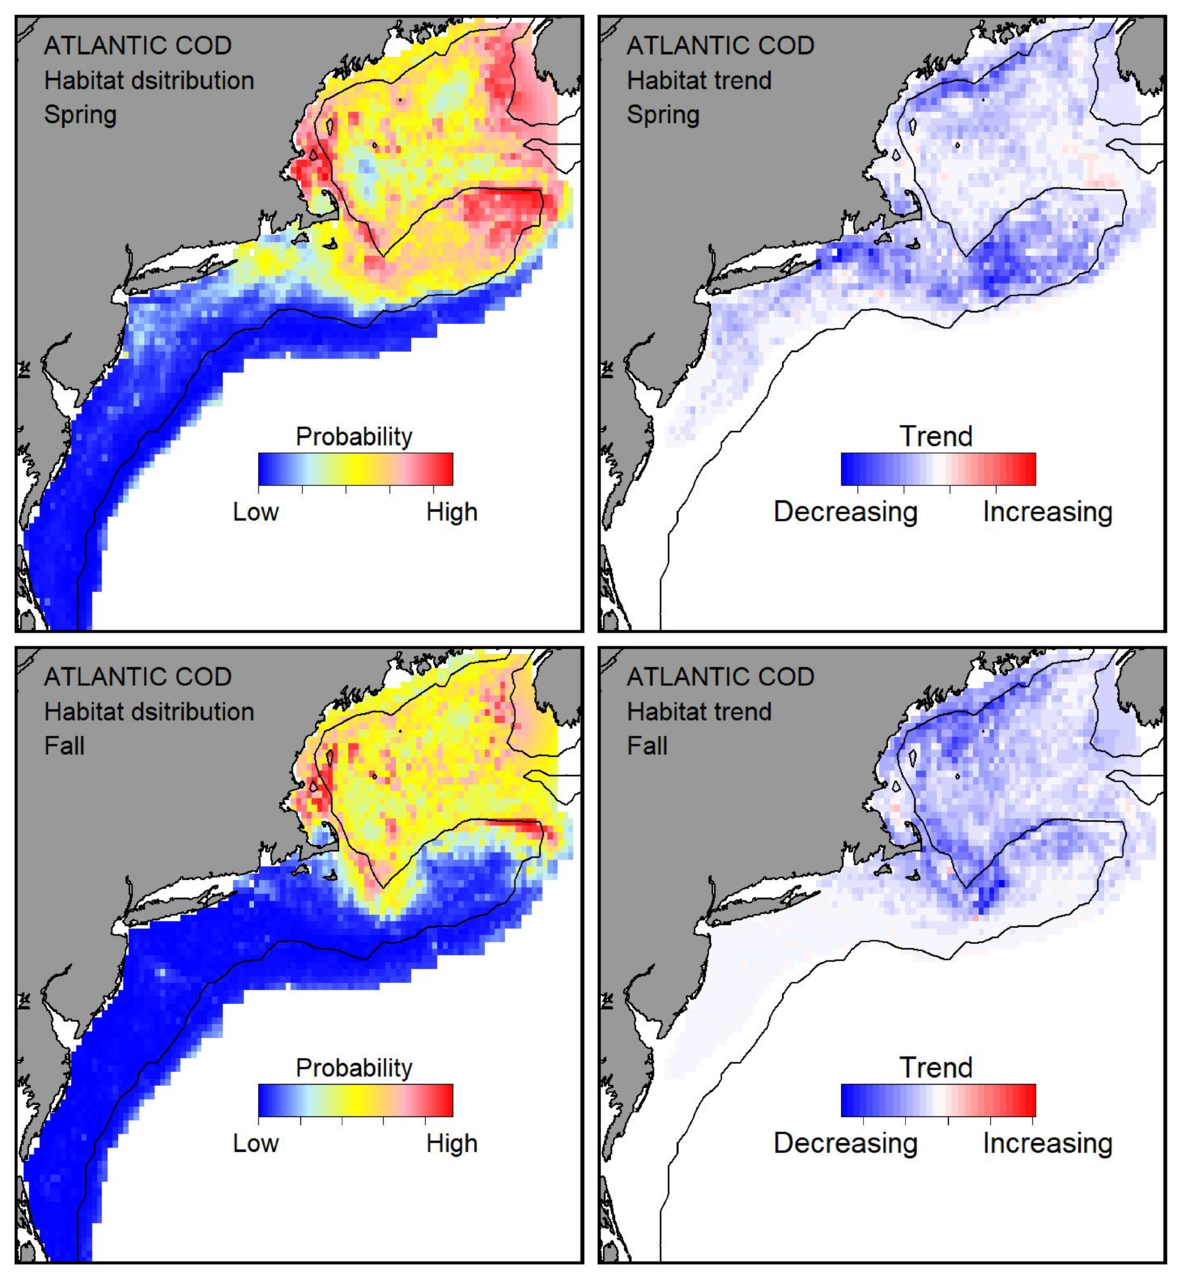 Top row: Probable habitat distribution for Atlantic cod showing the highest concentration and increasing trend in the Gulf of Maine during the spring. Bottom row: Probable habitat distribution for Atlantic cod showing the highest concentration and increasing trend in the Gulf of Maine during the fall.